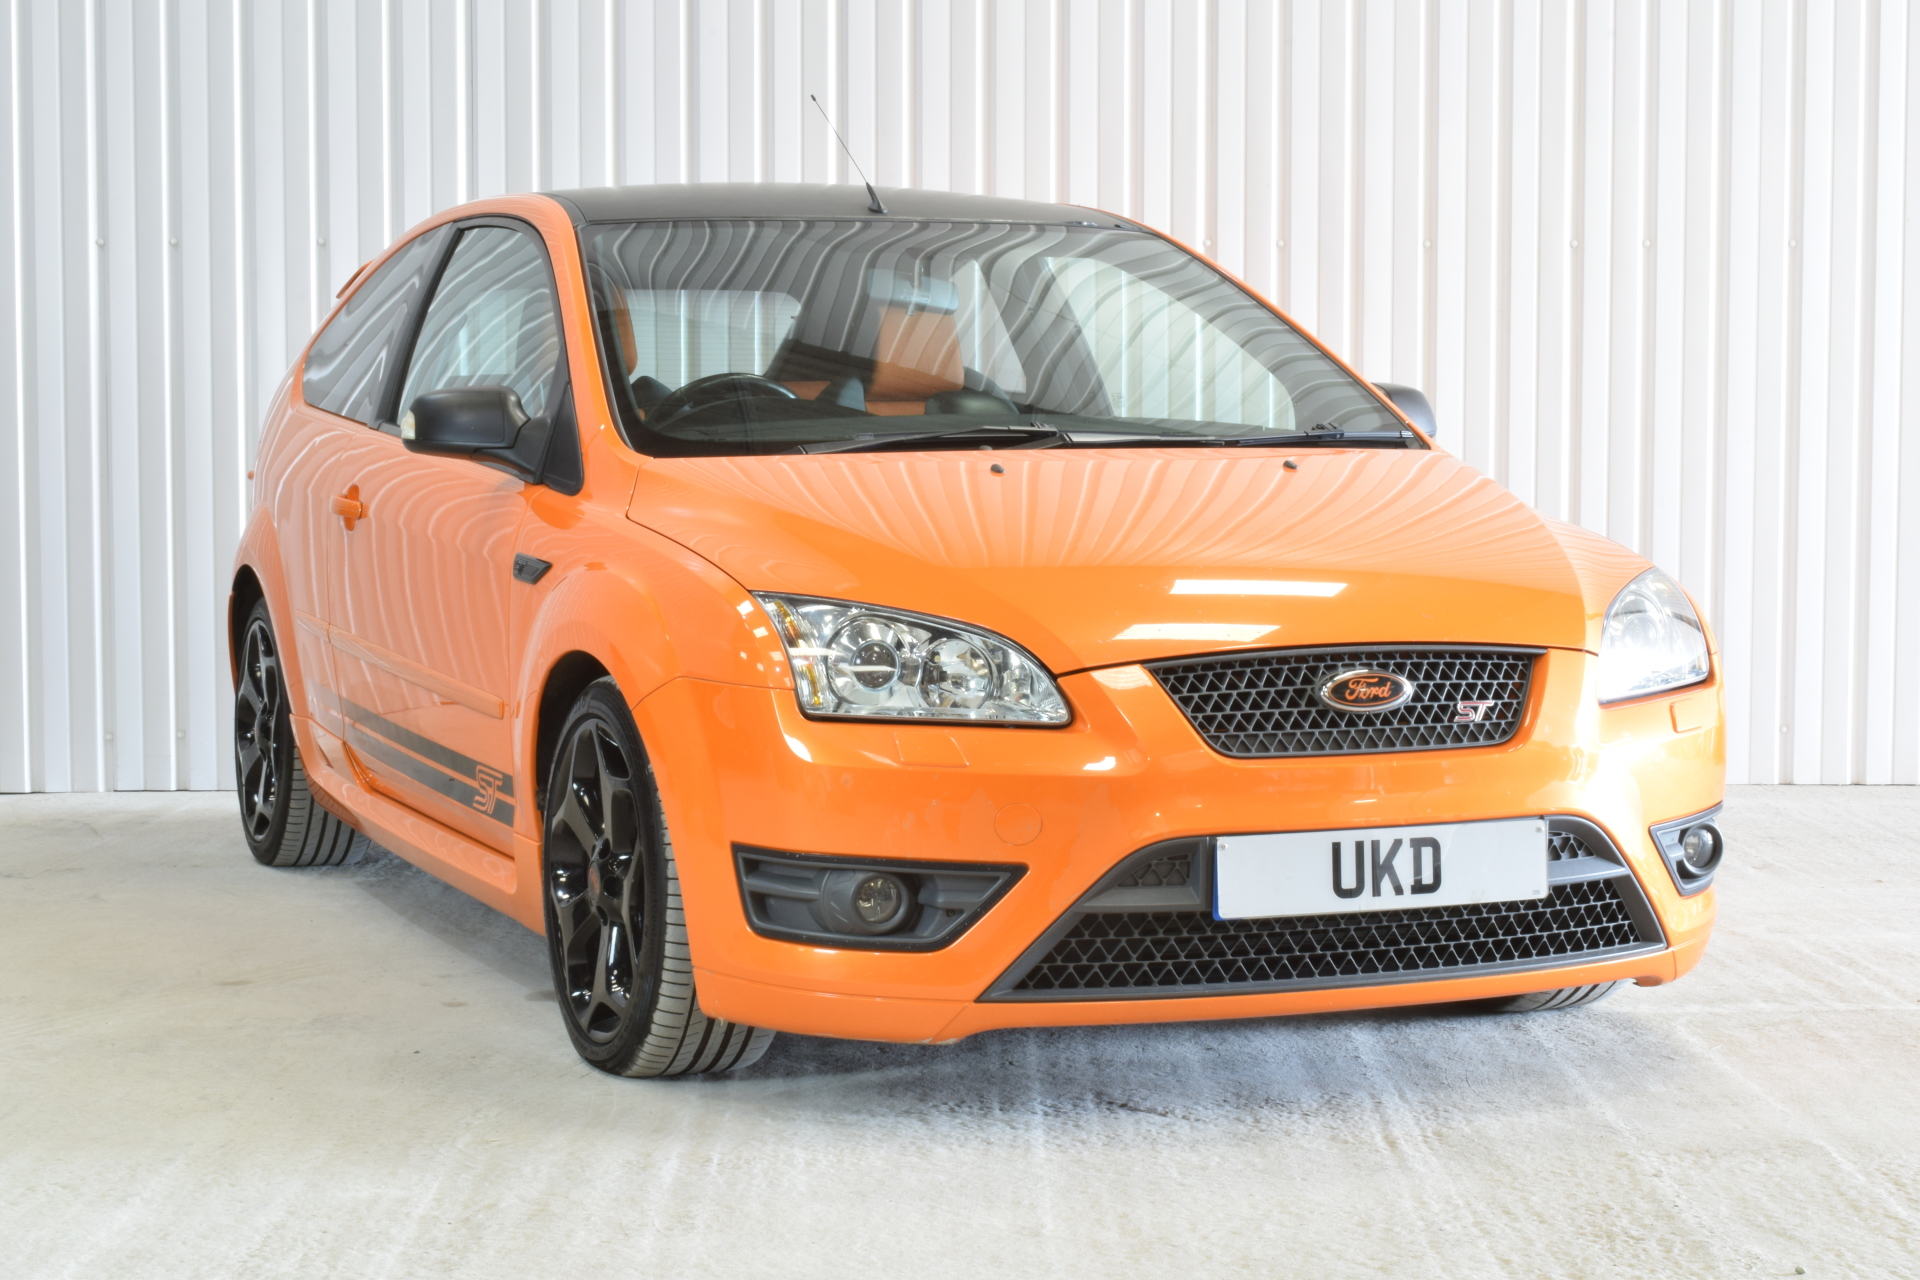 FORD FOCUS ST 3DR ORANGE 2006